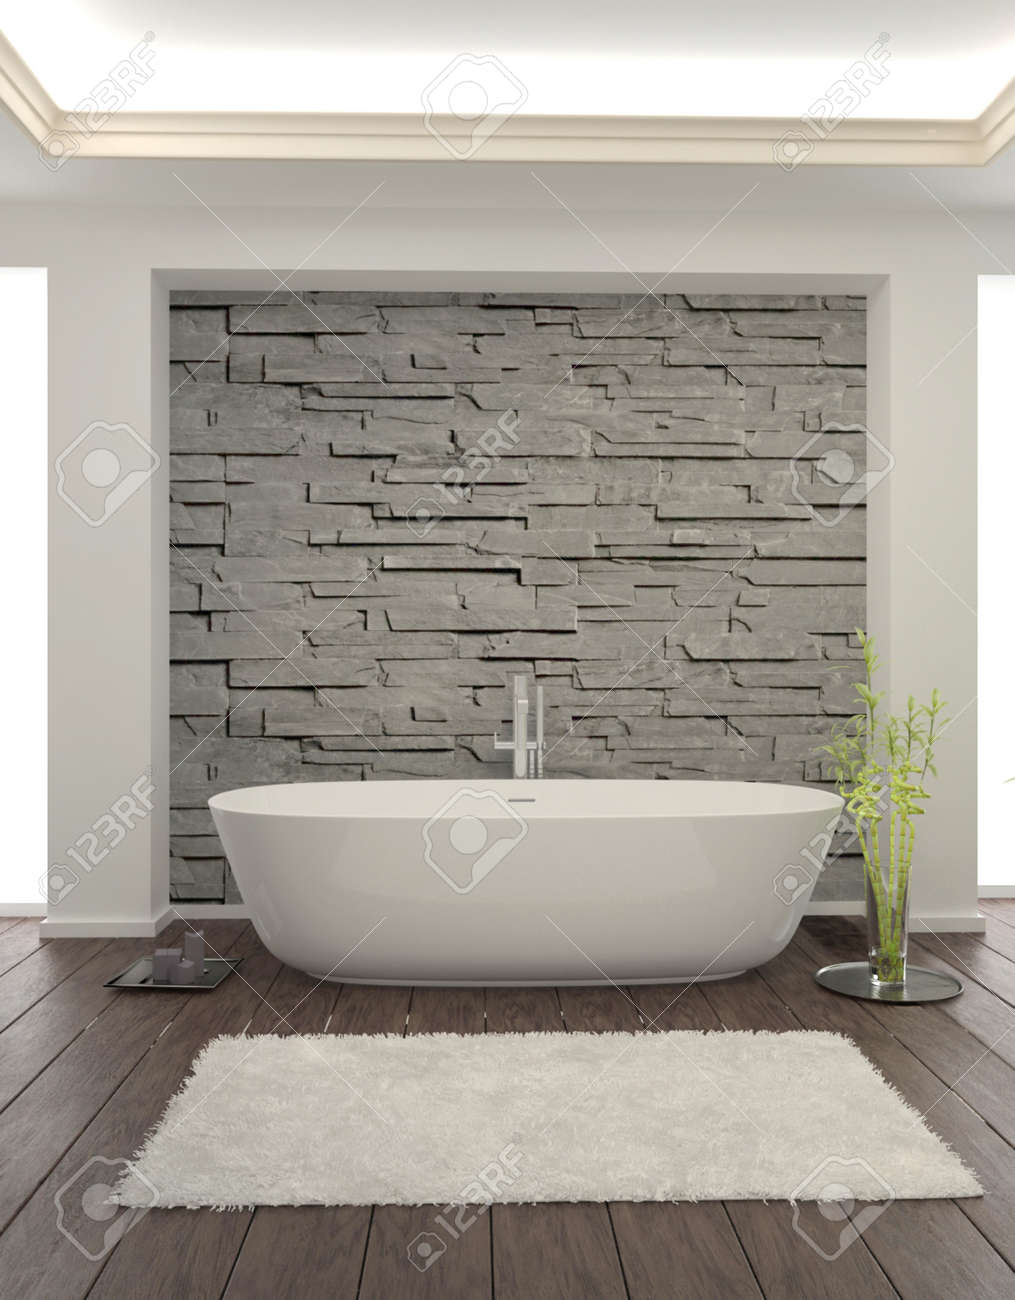 Modern Bathroom Interior With Stone Wall Stock Photo, Picture And ...